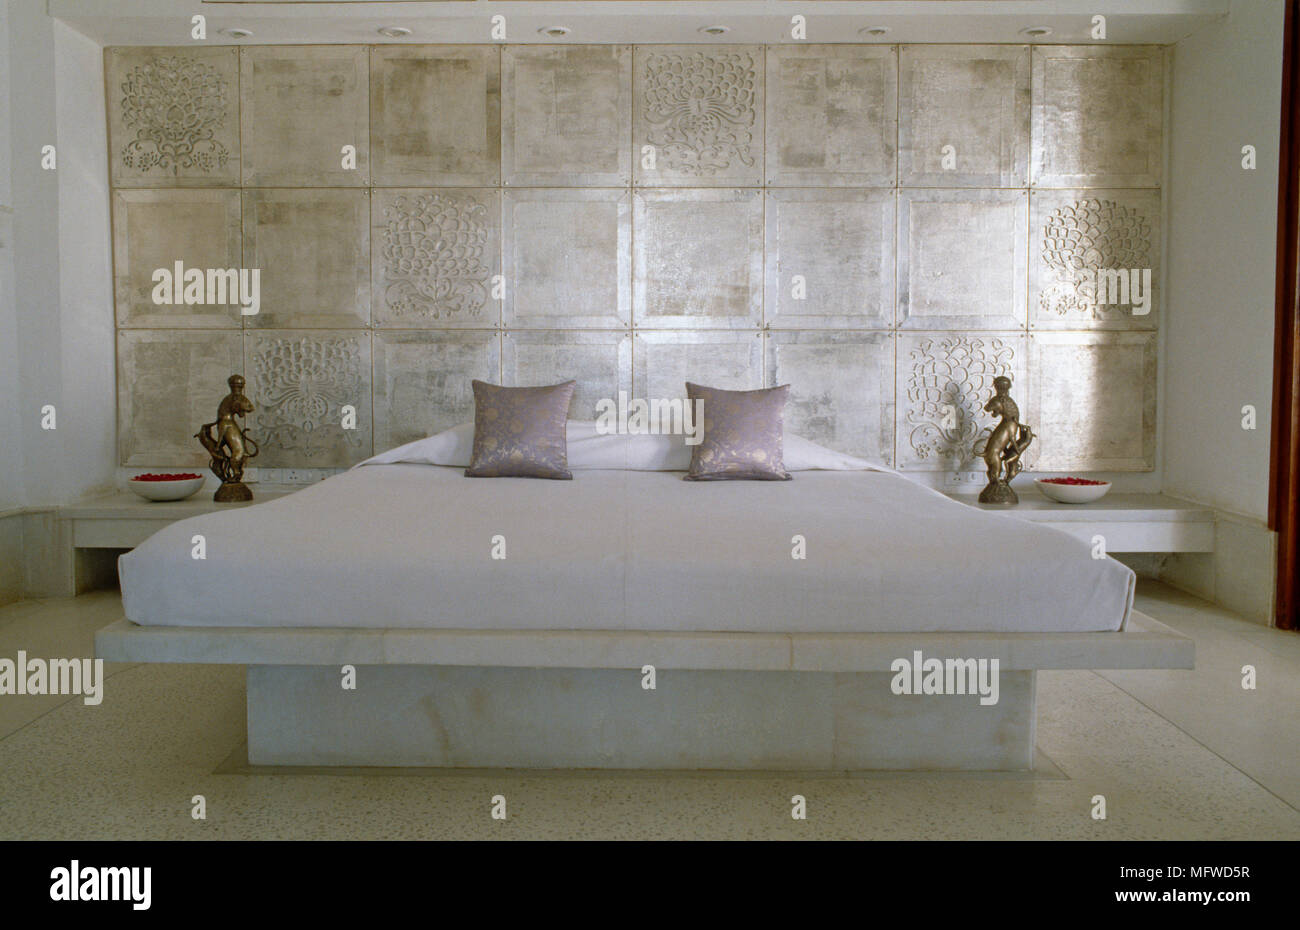 King Size Bed With Marble Platform Against Tiled Wall In